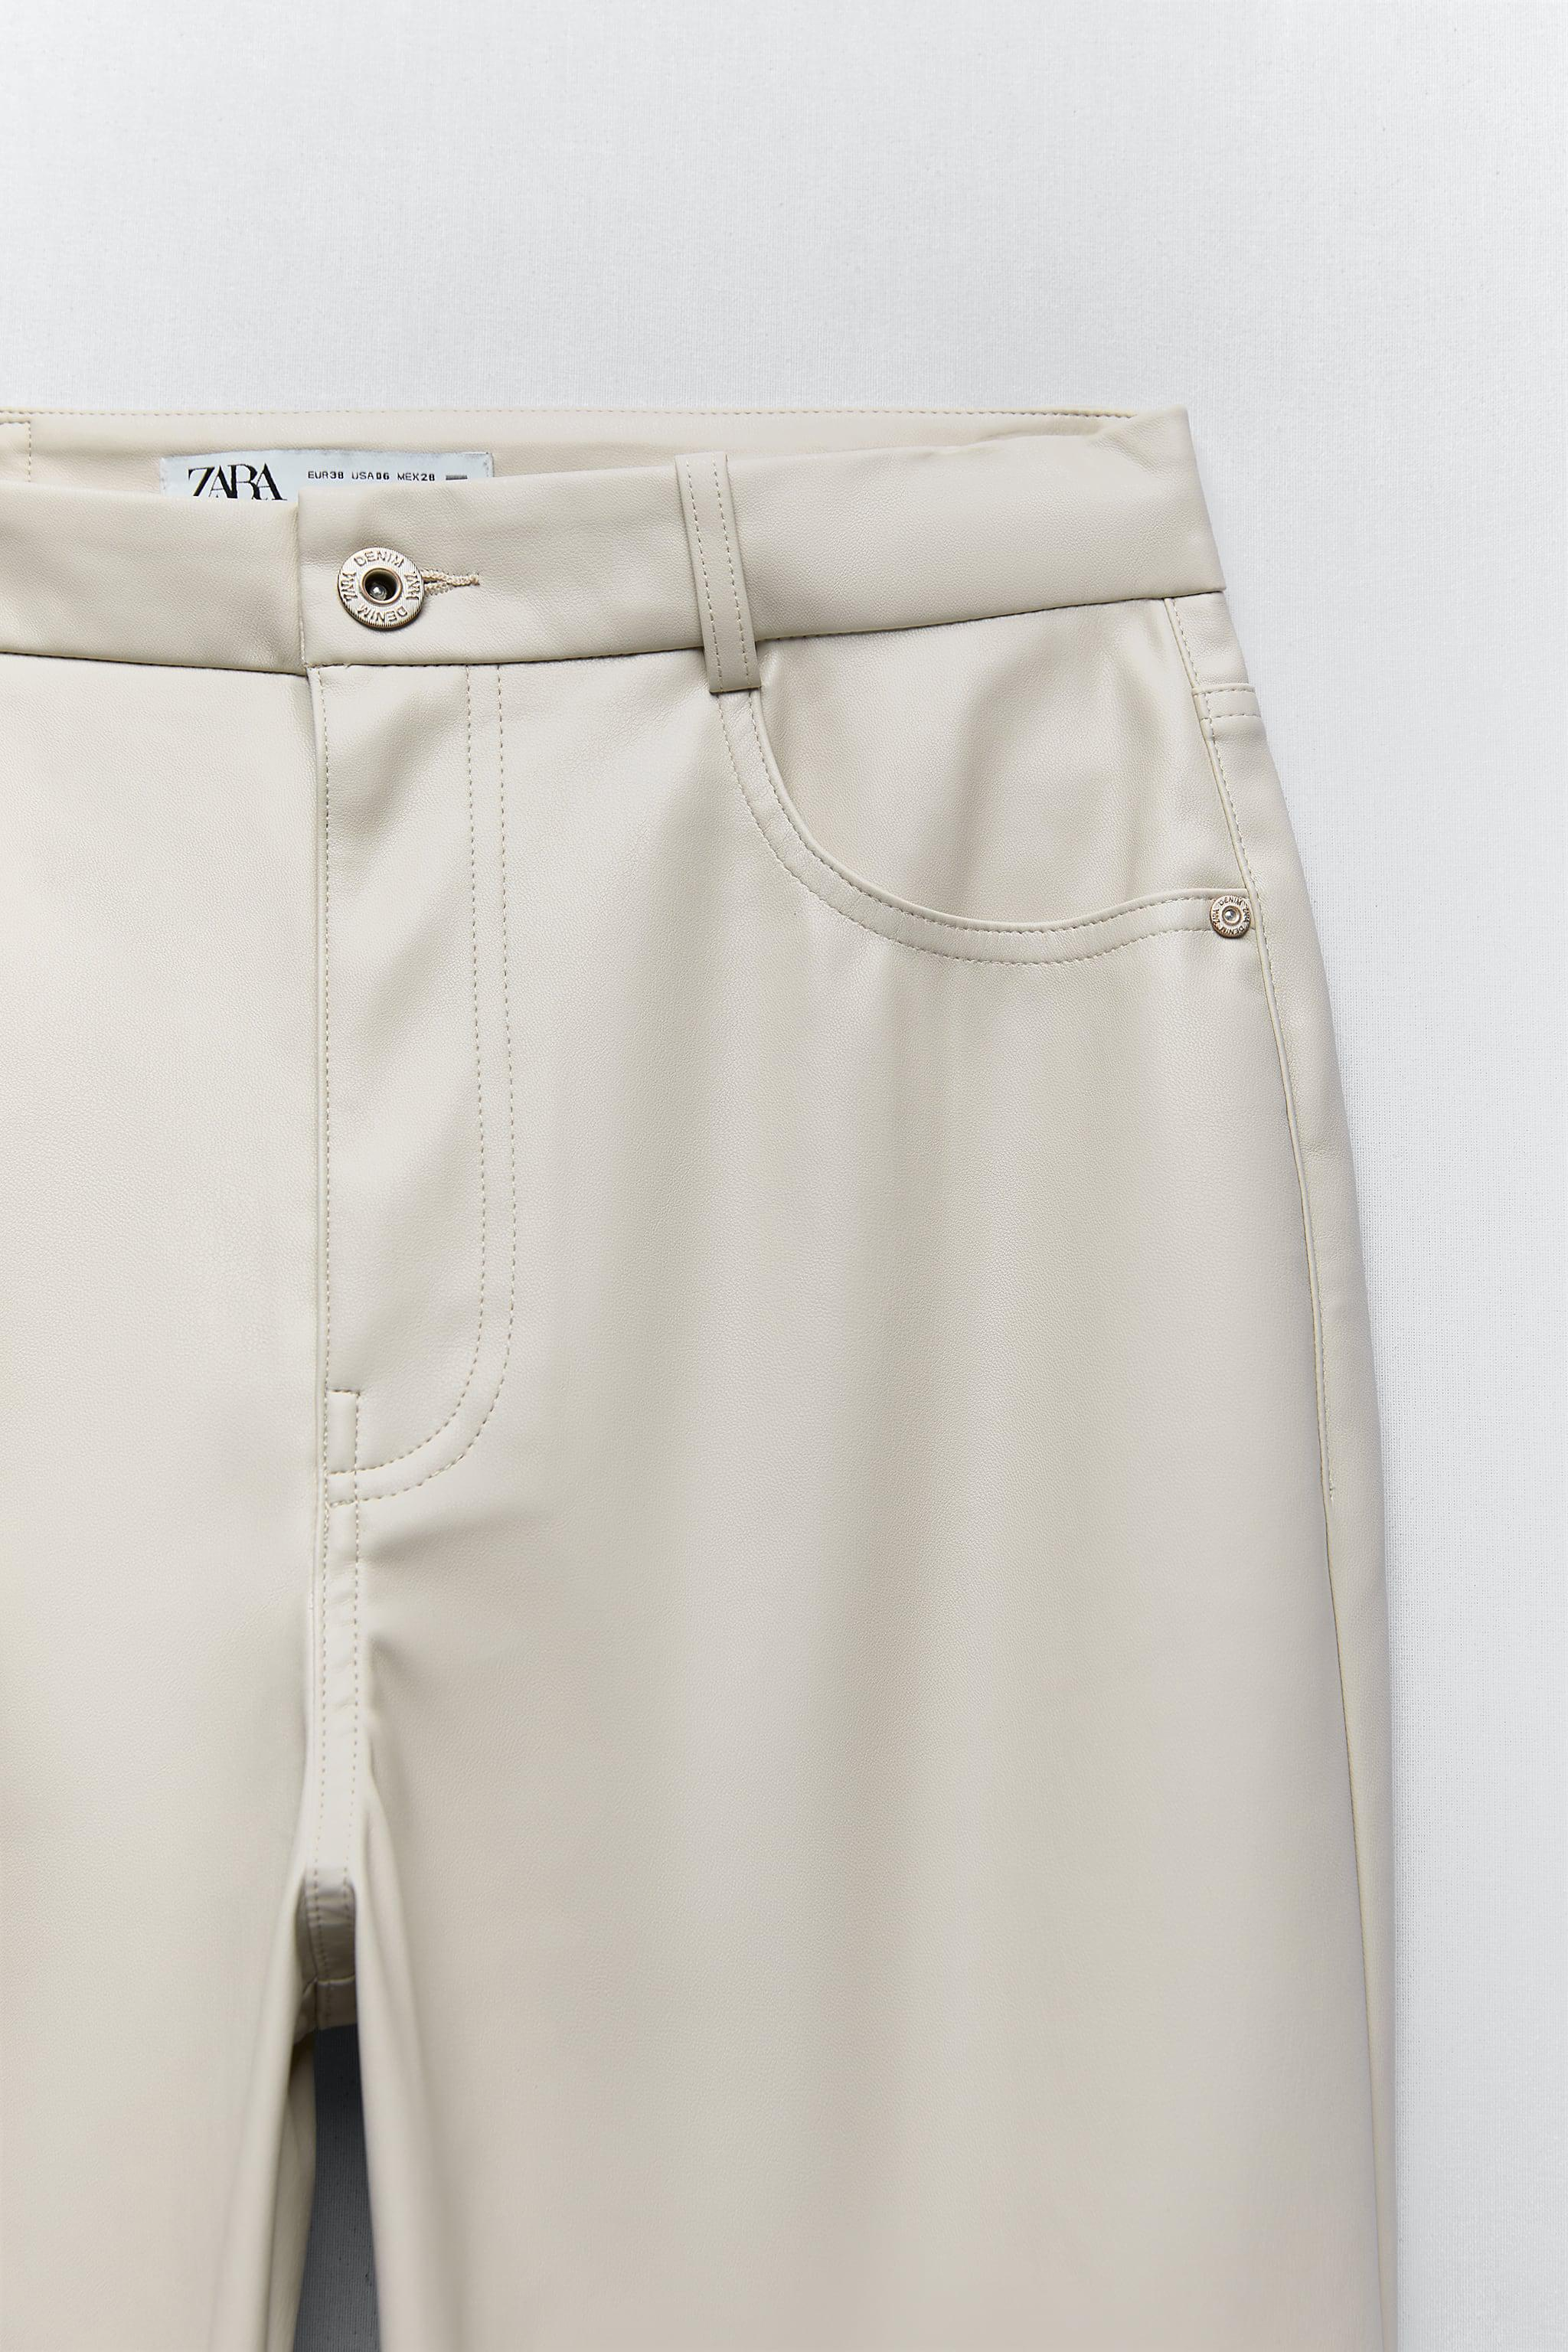 FAUX LEATHER MOM FIT PANTS 6